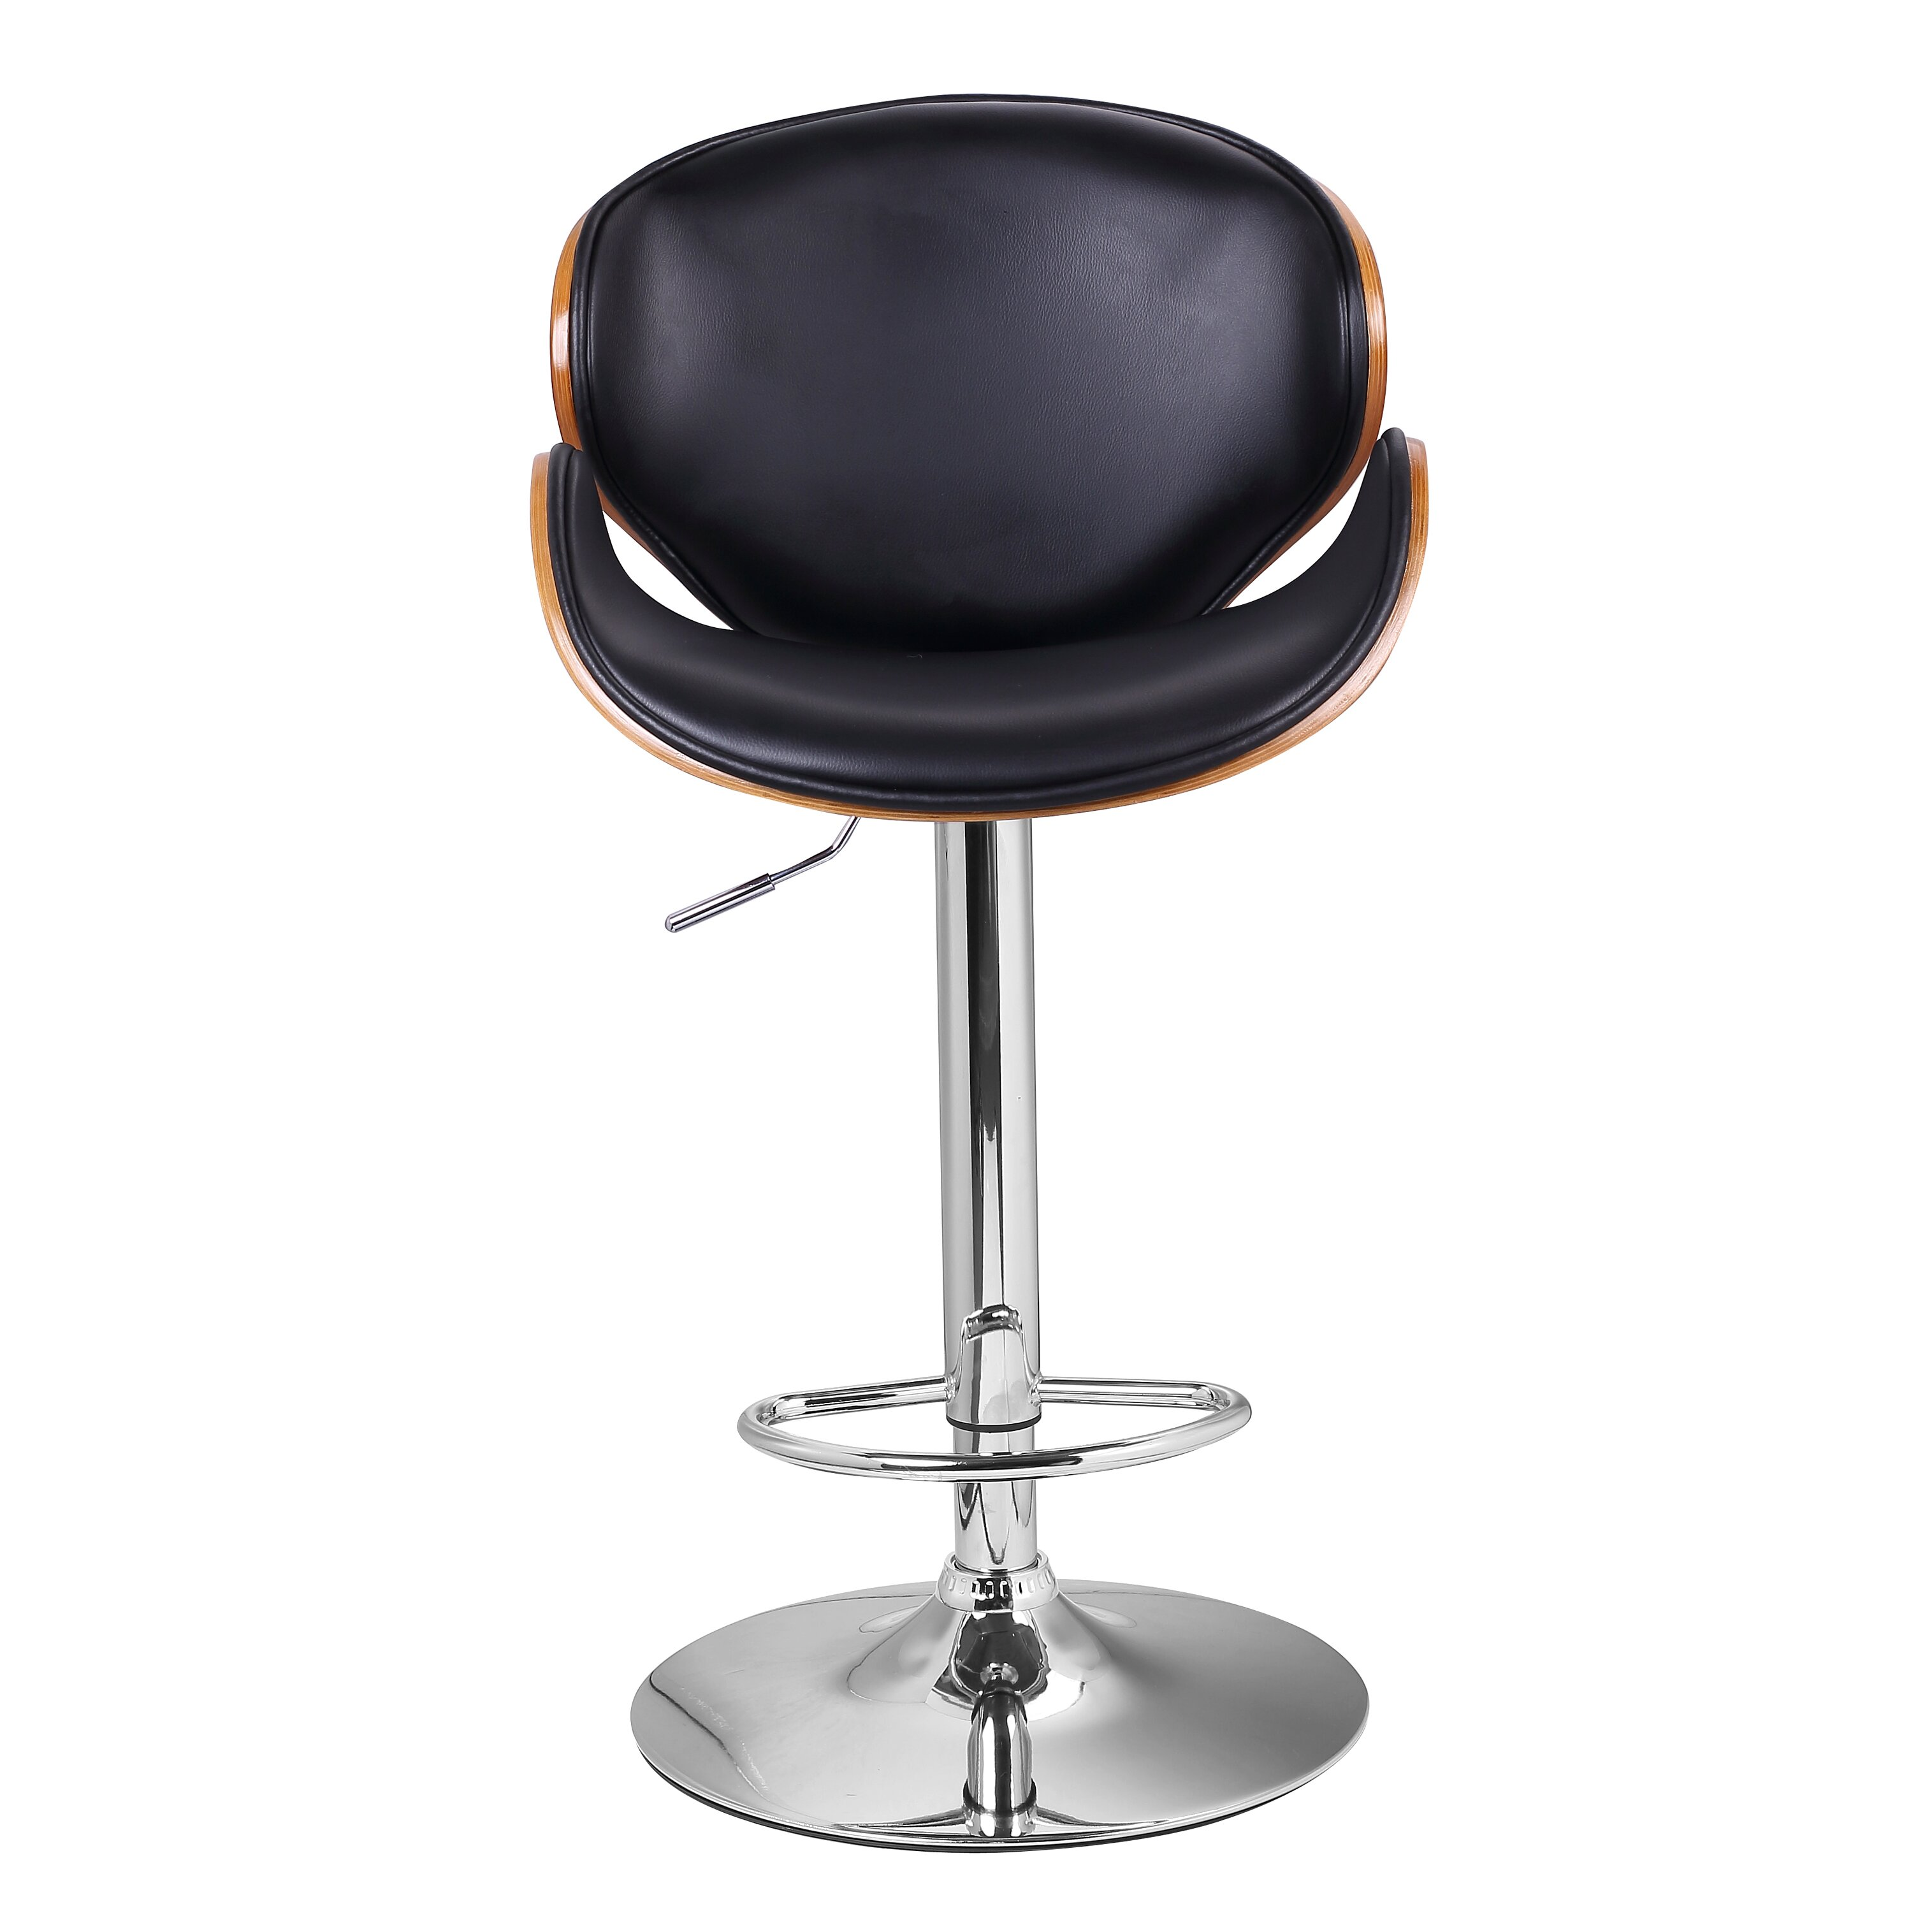 Famiscorp Bentwood Leather Adjustable Height Swivel Bar